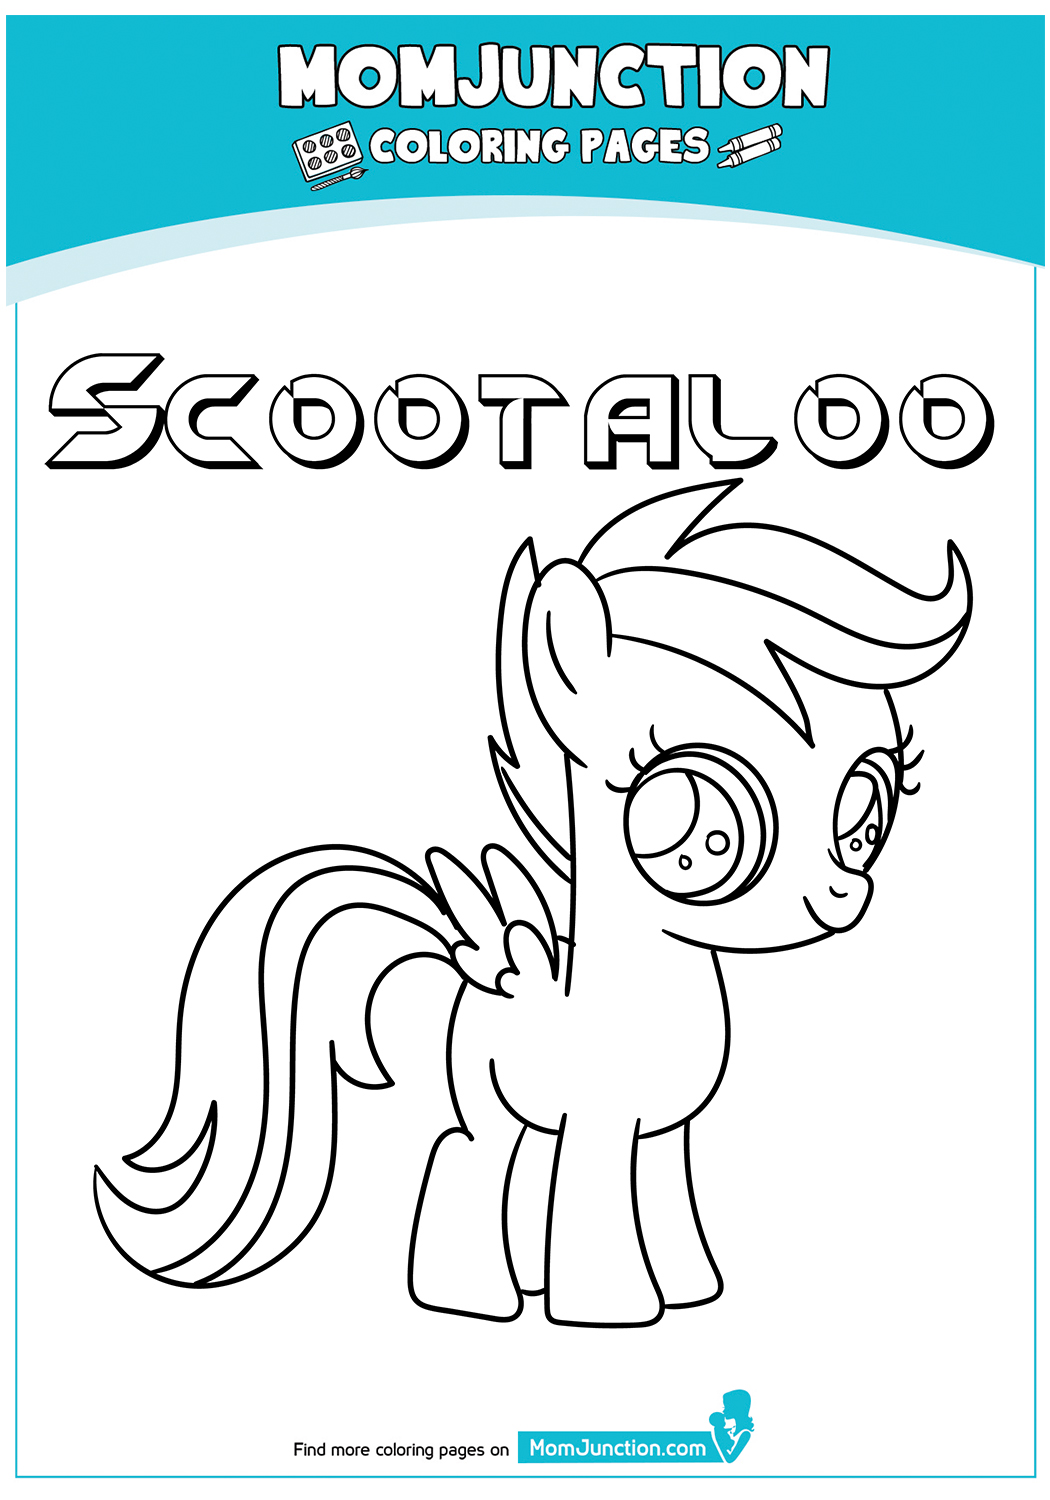 scootaloo-17